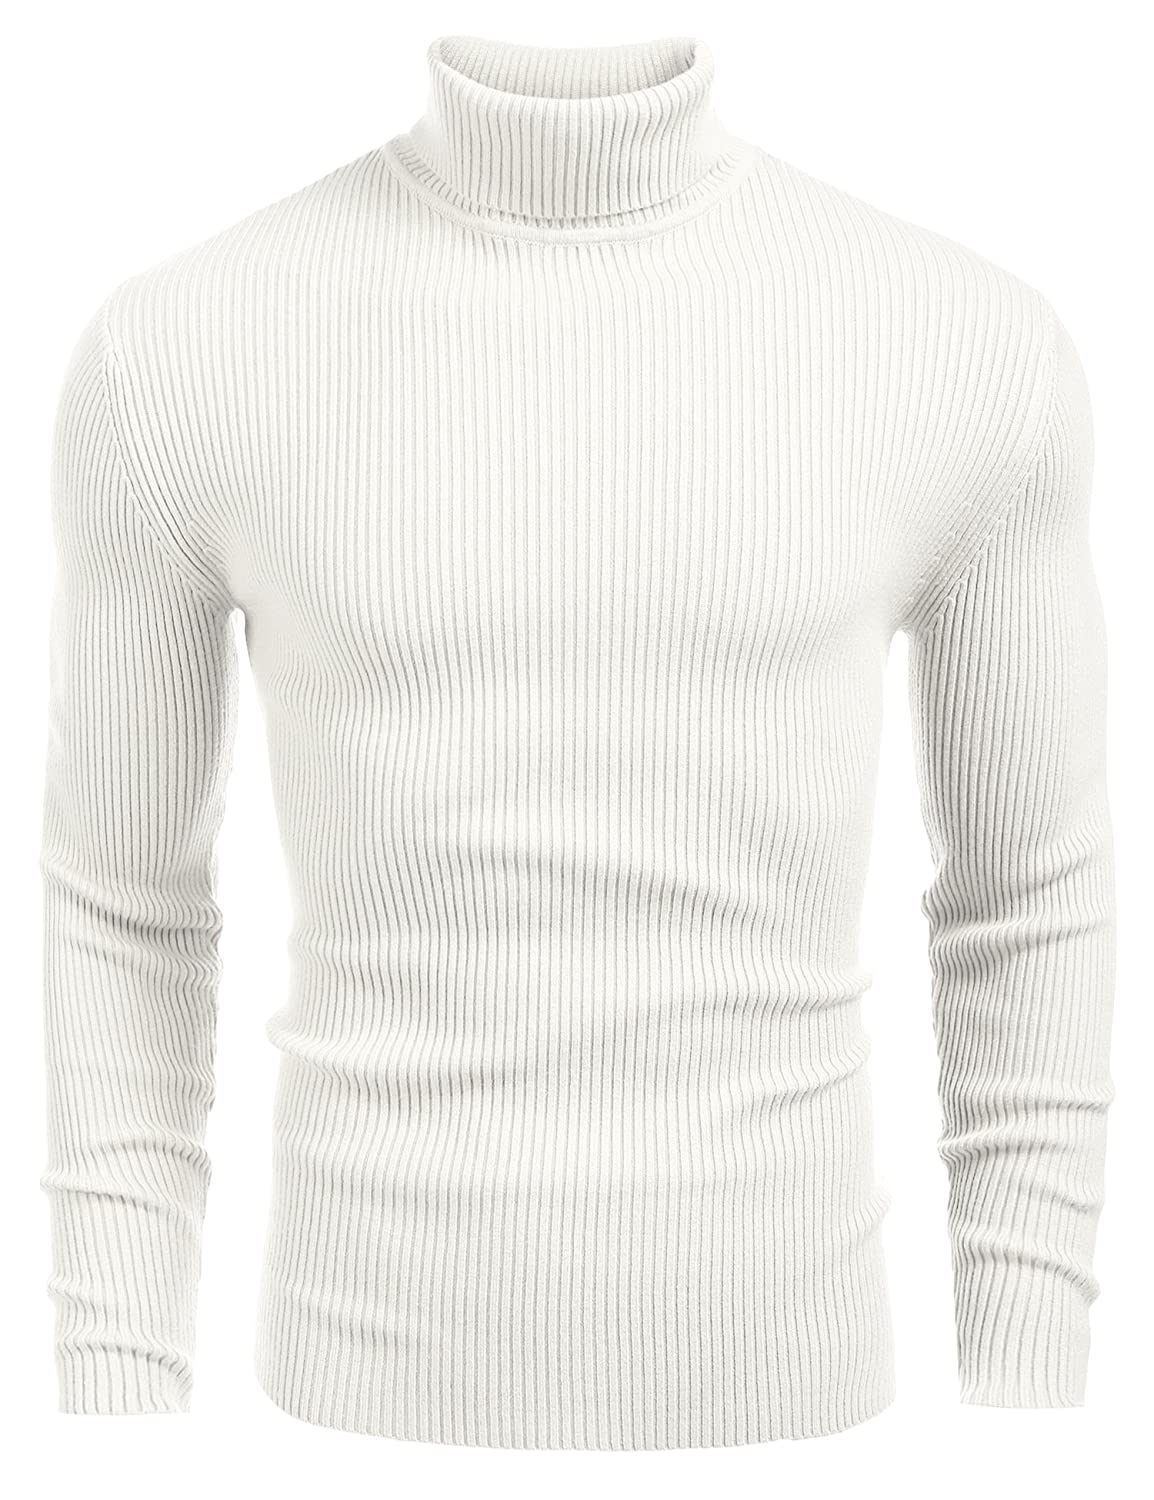 aedf9dbcb207 COOFANDY Mens Ribbed Slim Fit Knitted Pullover Turtleneck Sweater ...